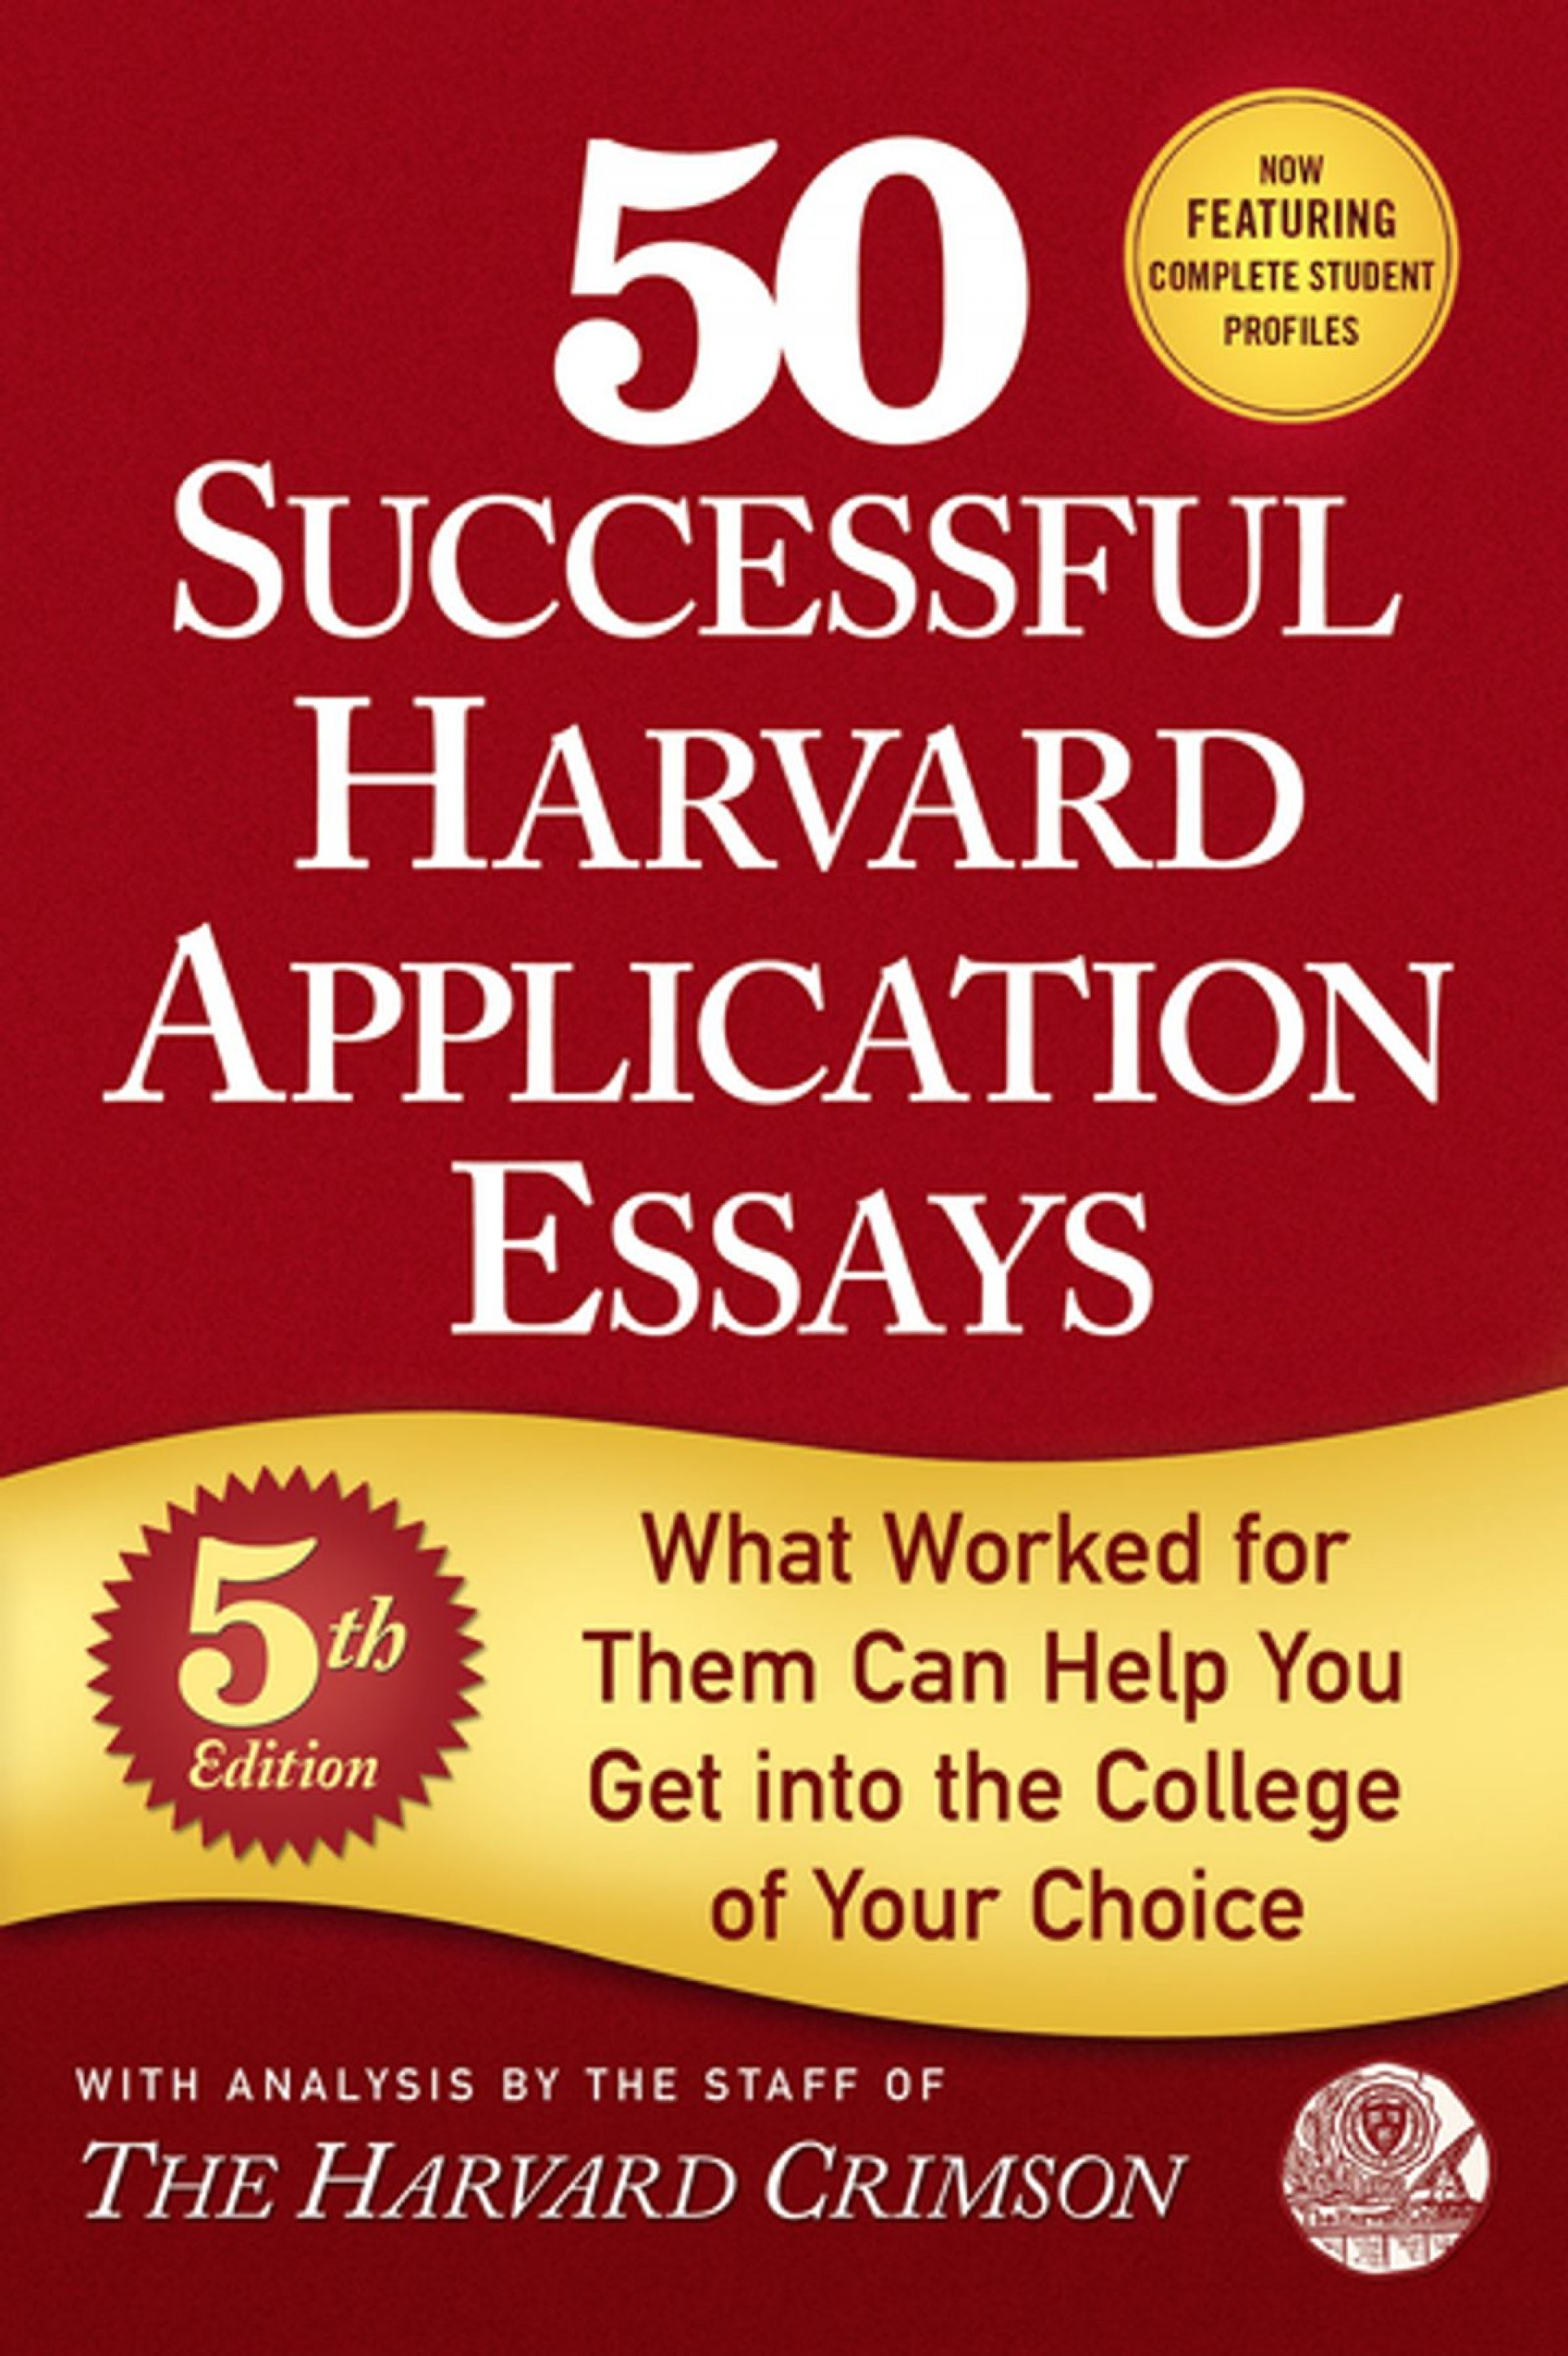 020 Essays 5th Edition Successful Harvard Application Essay Imposing 50 Fifty Great Pdf Free A Portable Anthology Ebook 1920